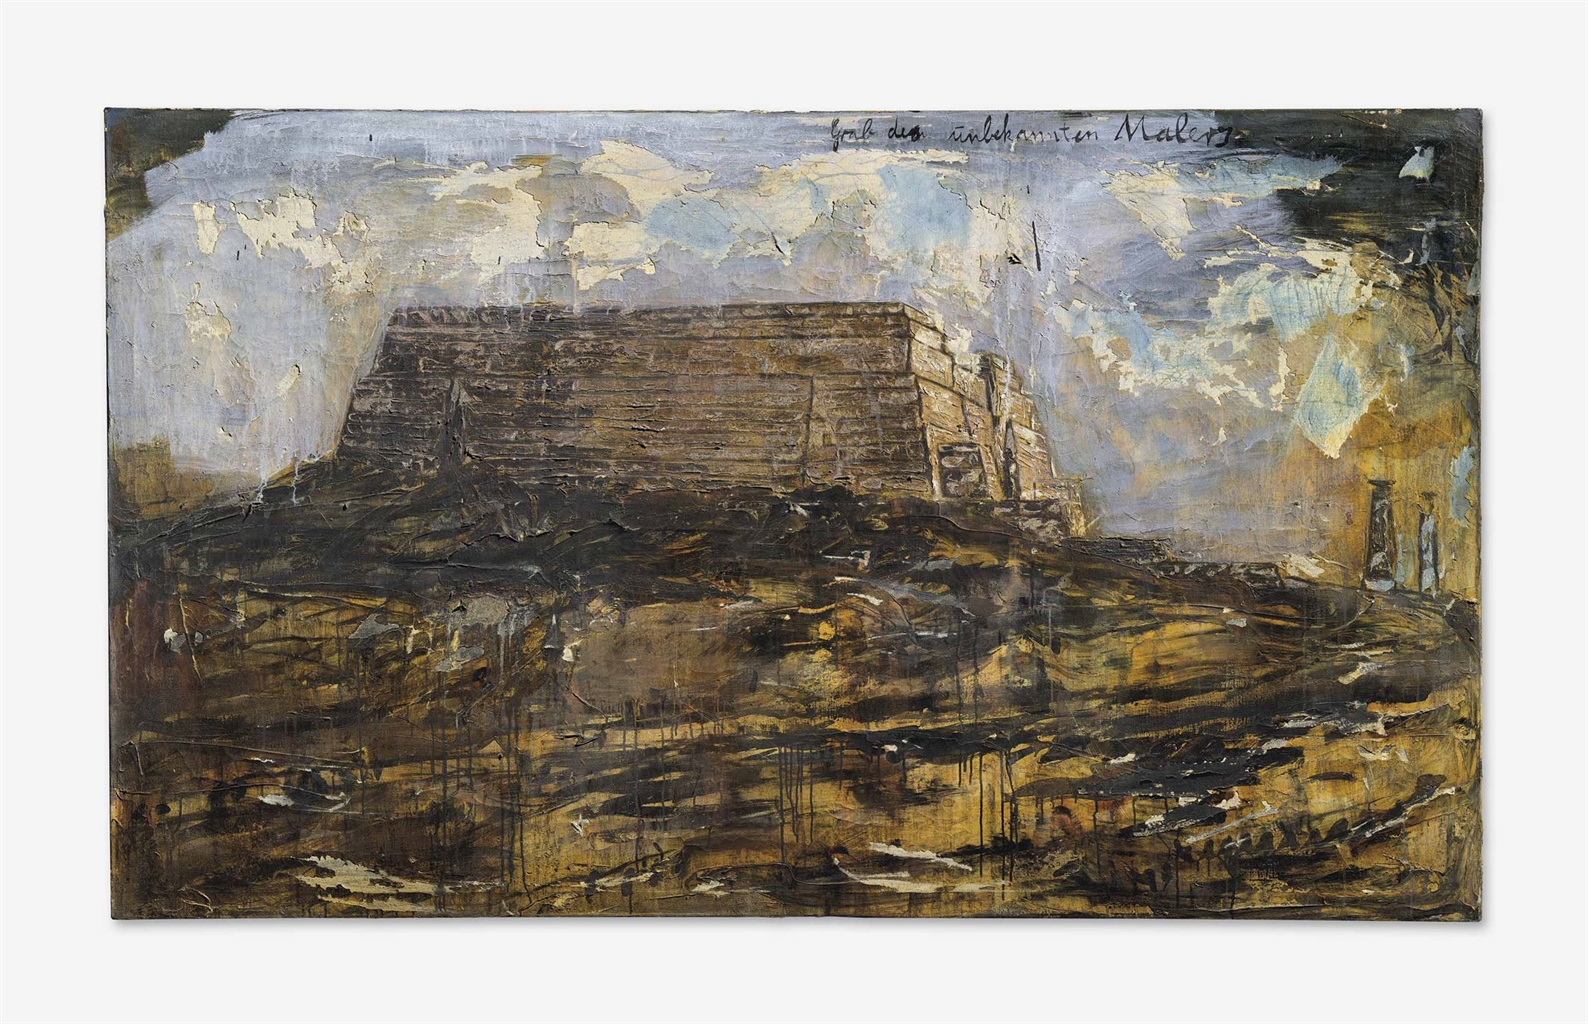 Anselm Kiefer-Grab des unbekannten Malers (Tomb of the Unknown Painter)-1983